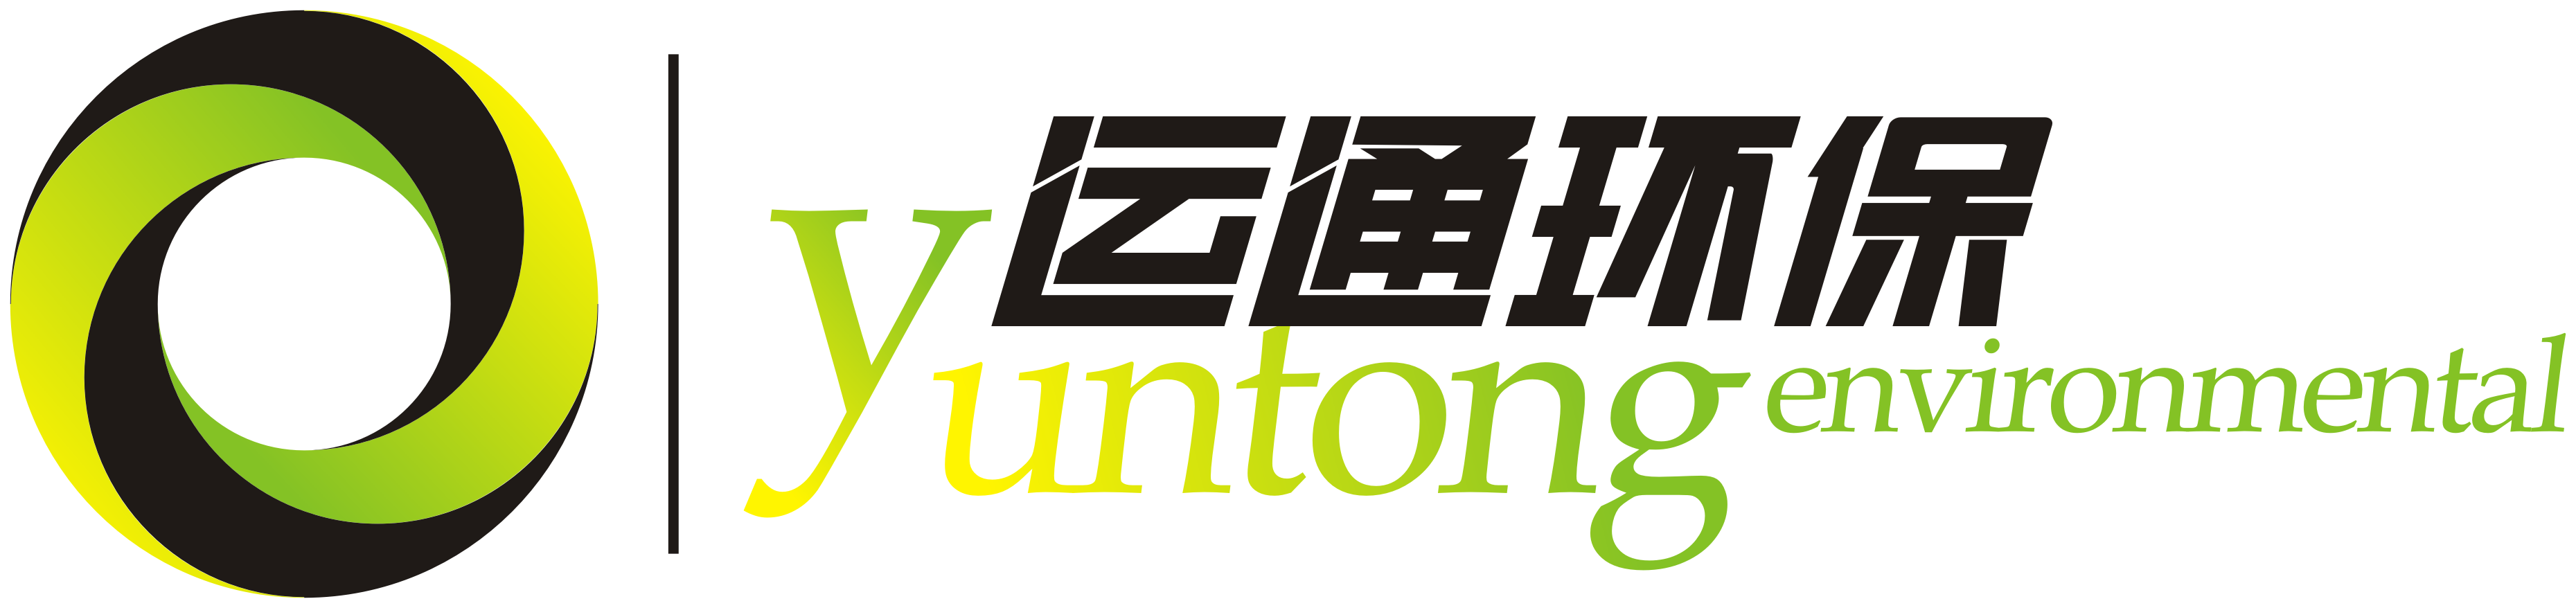 DONGGUAN YUNTONG ENVIRONMENTAL PROTECTION TECHNOLOGY CO.,LTD